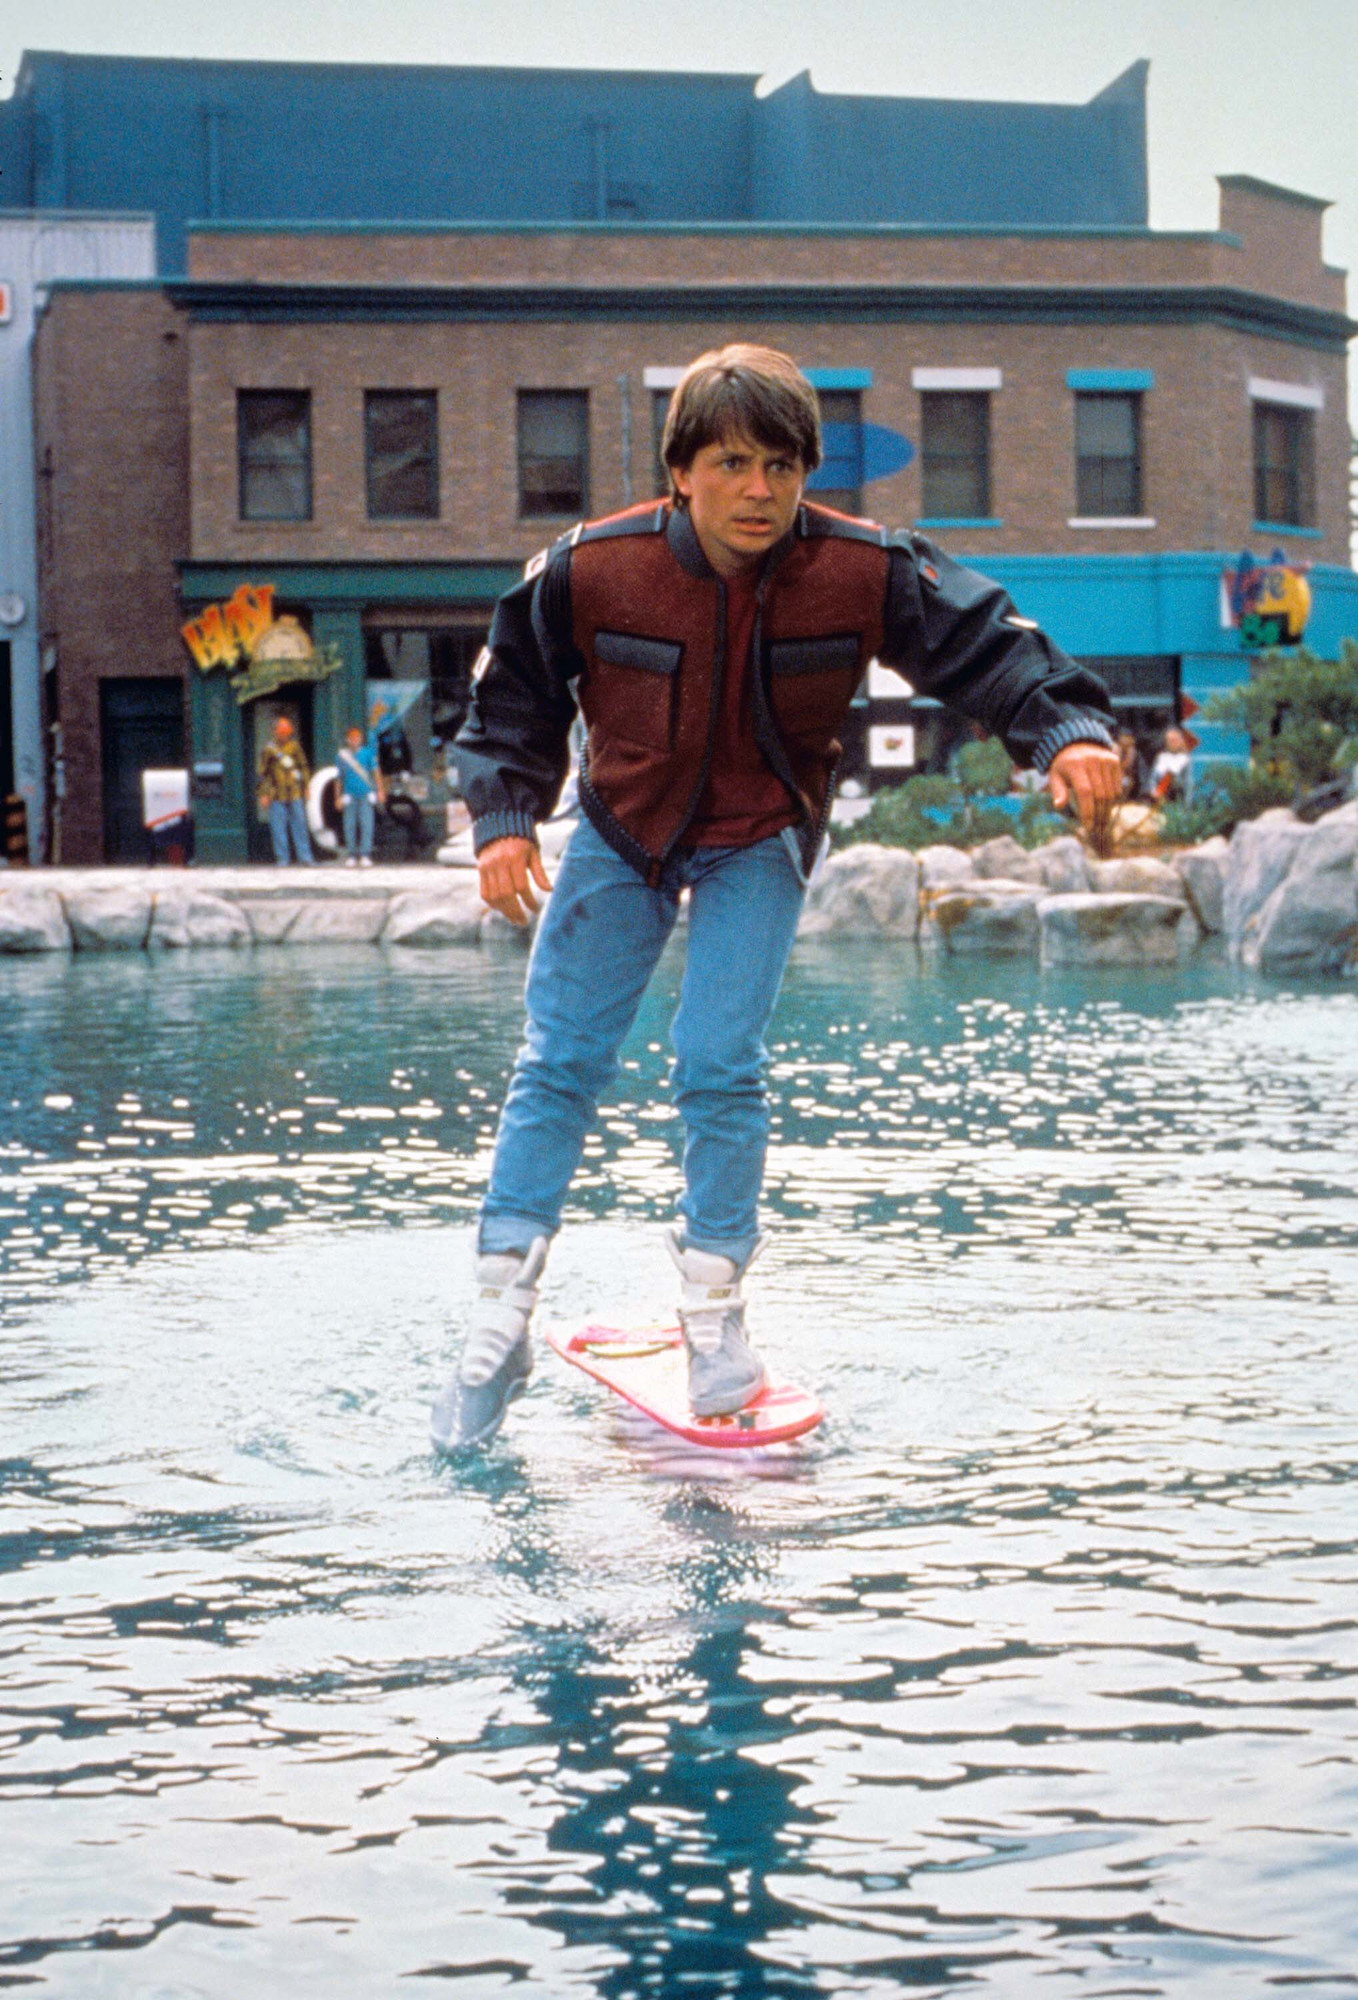 Back To The Future Part Ii 1989 Directed By Robert Zemeckis Moma